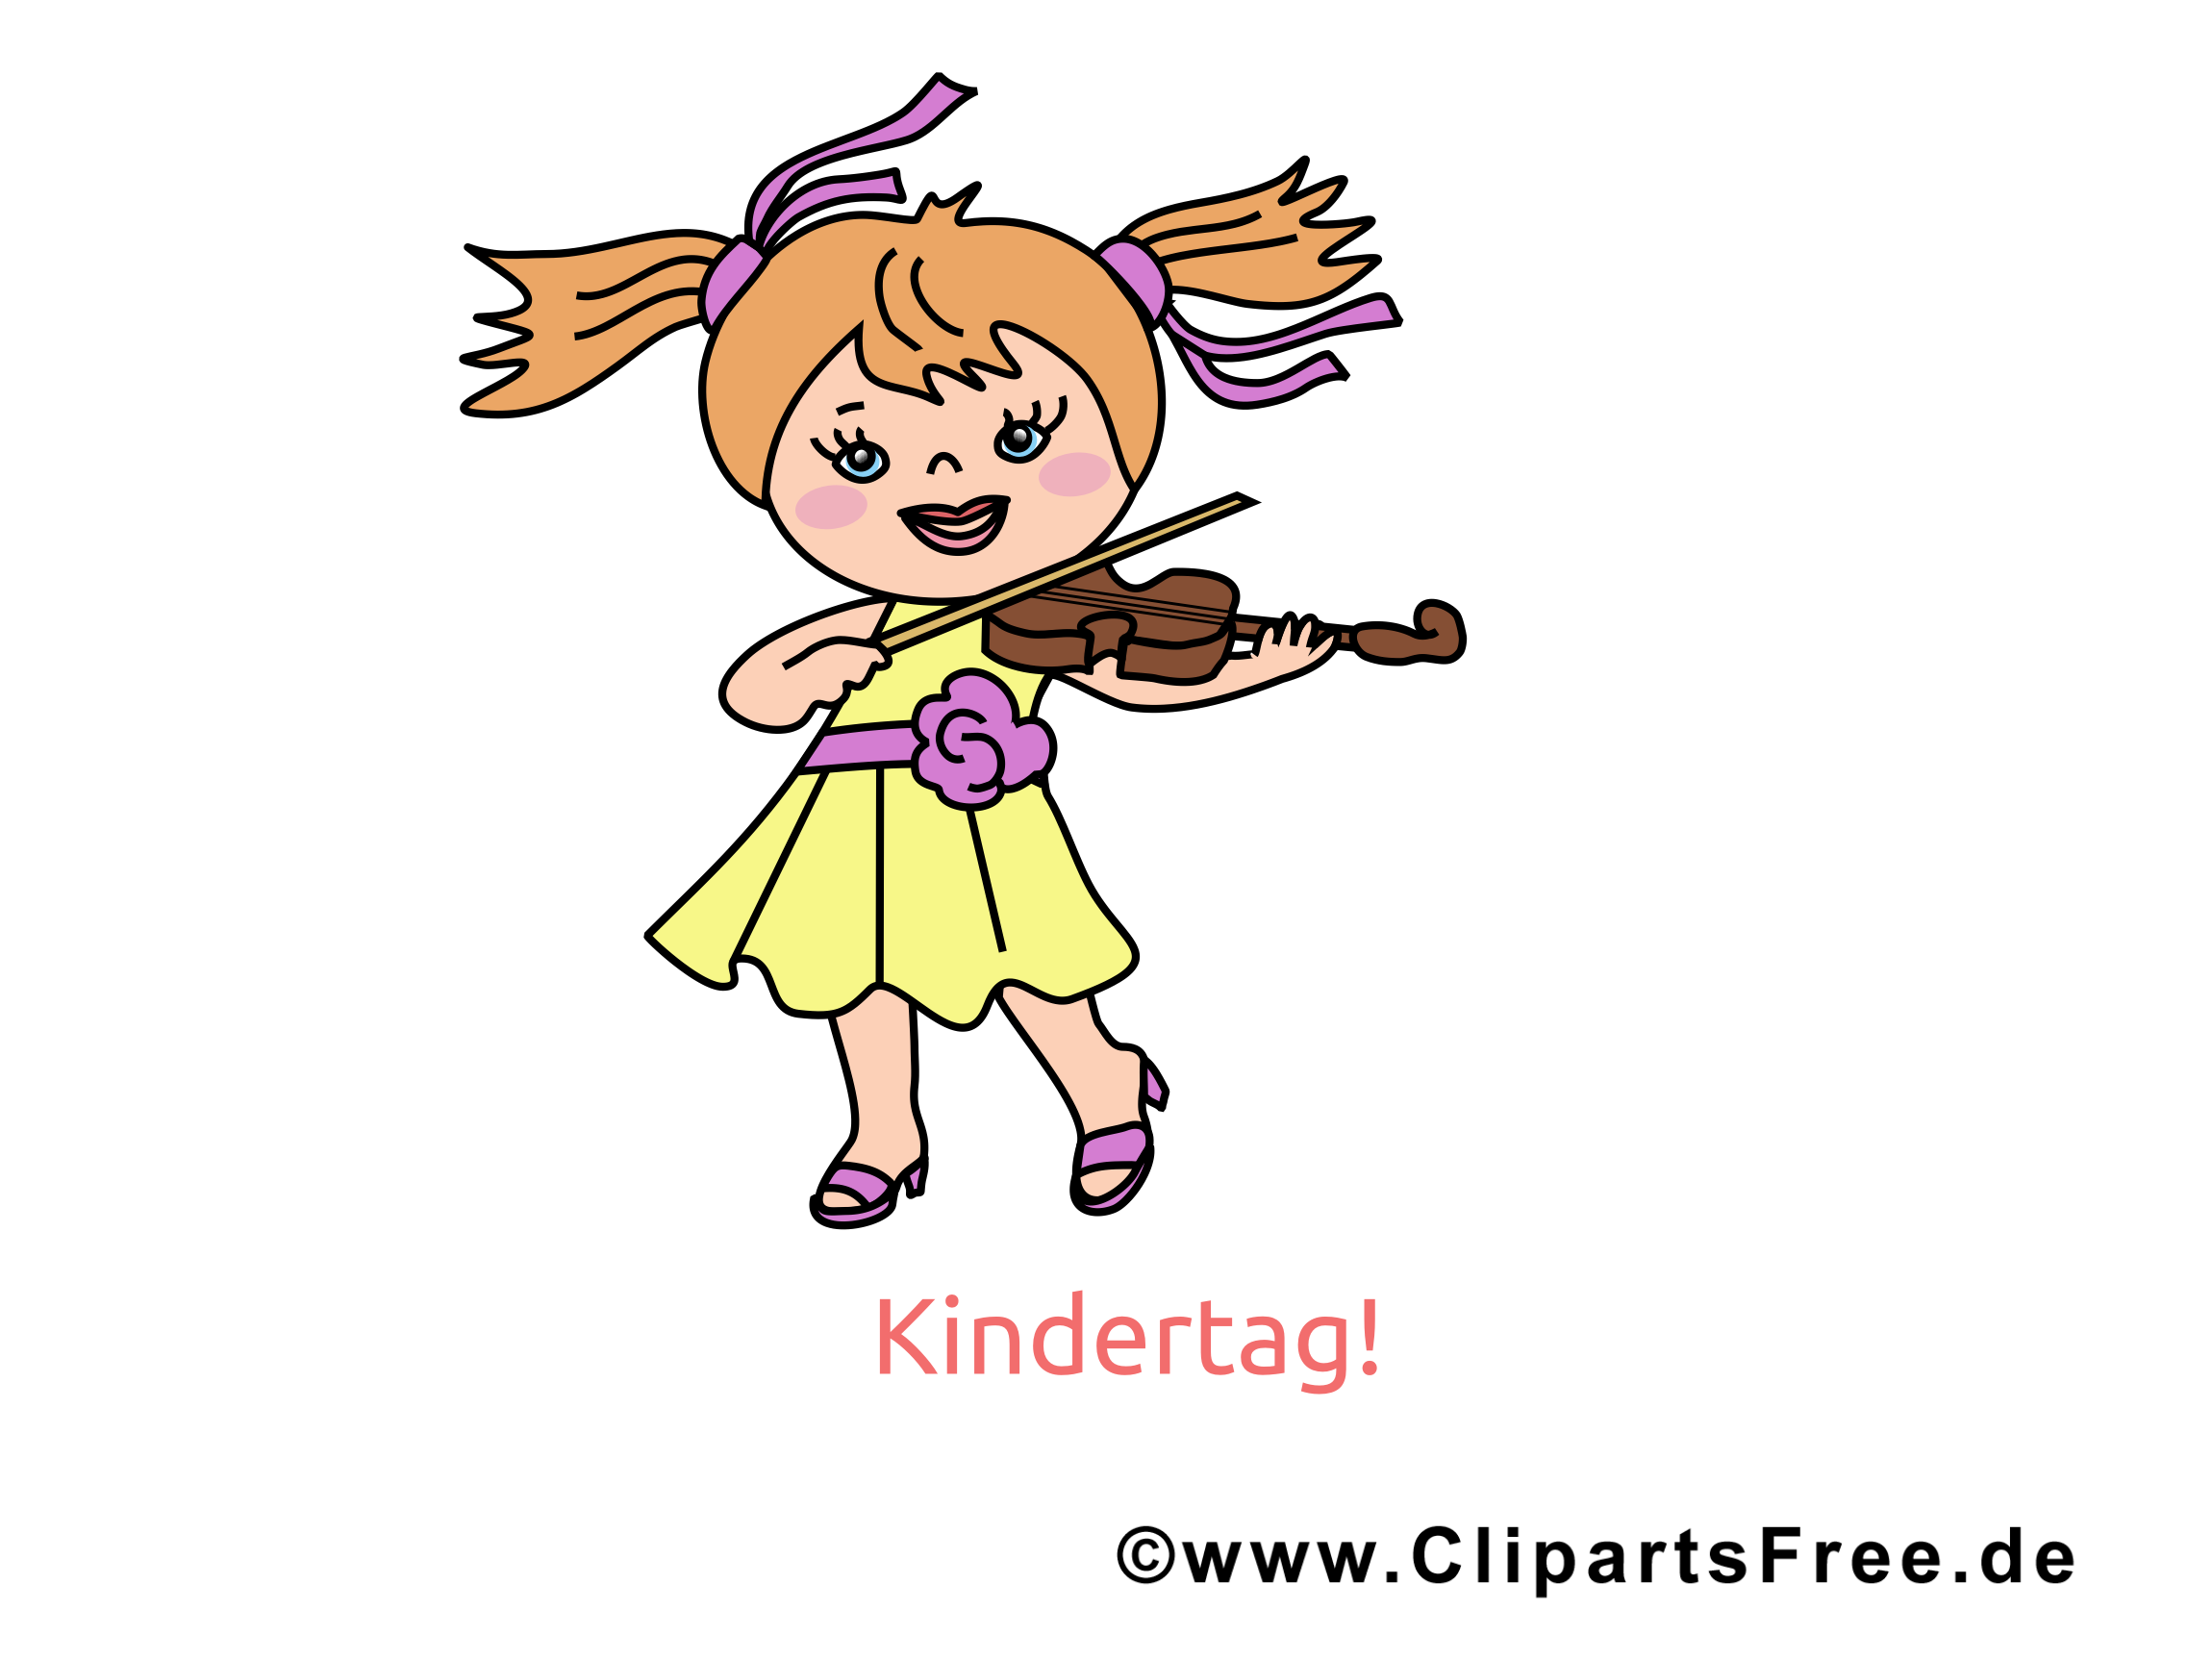 Kindertag Clipart, Bild, Cartoon, Illustration, Zeichnung.